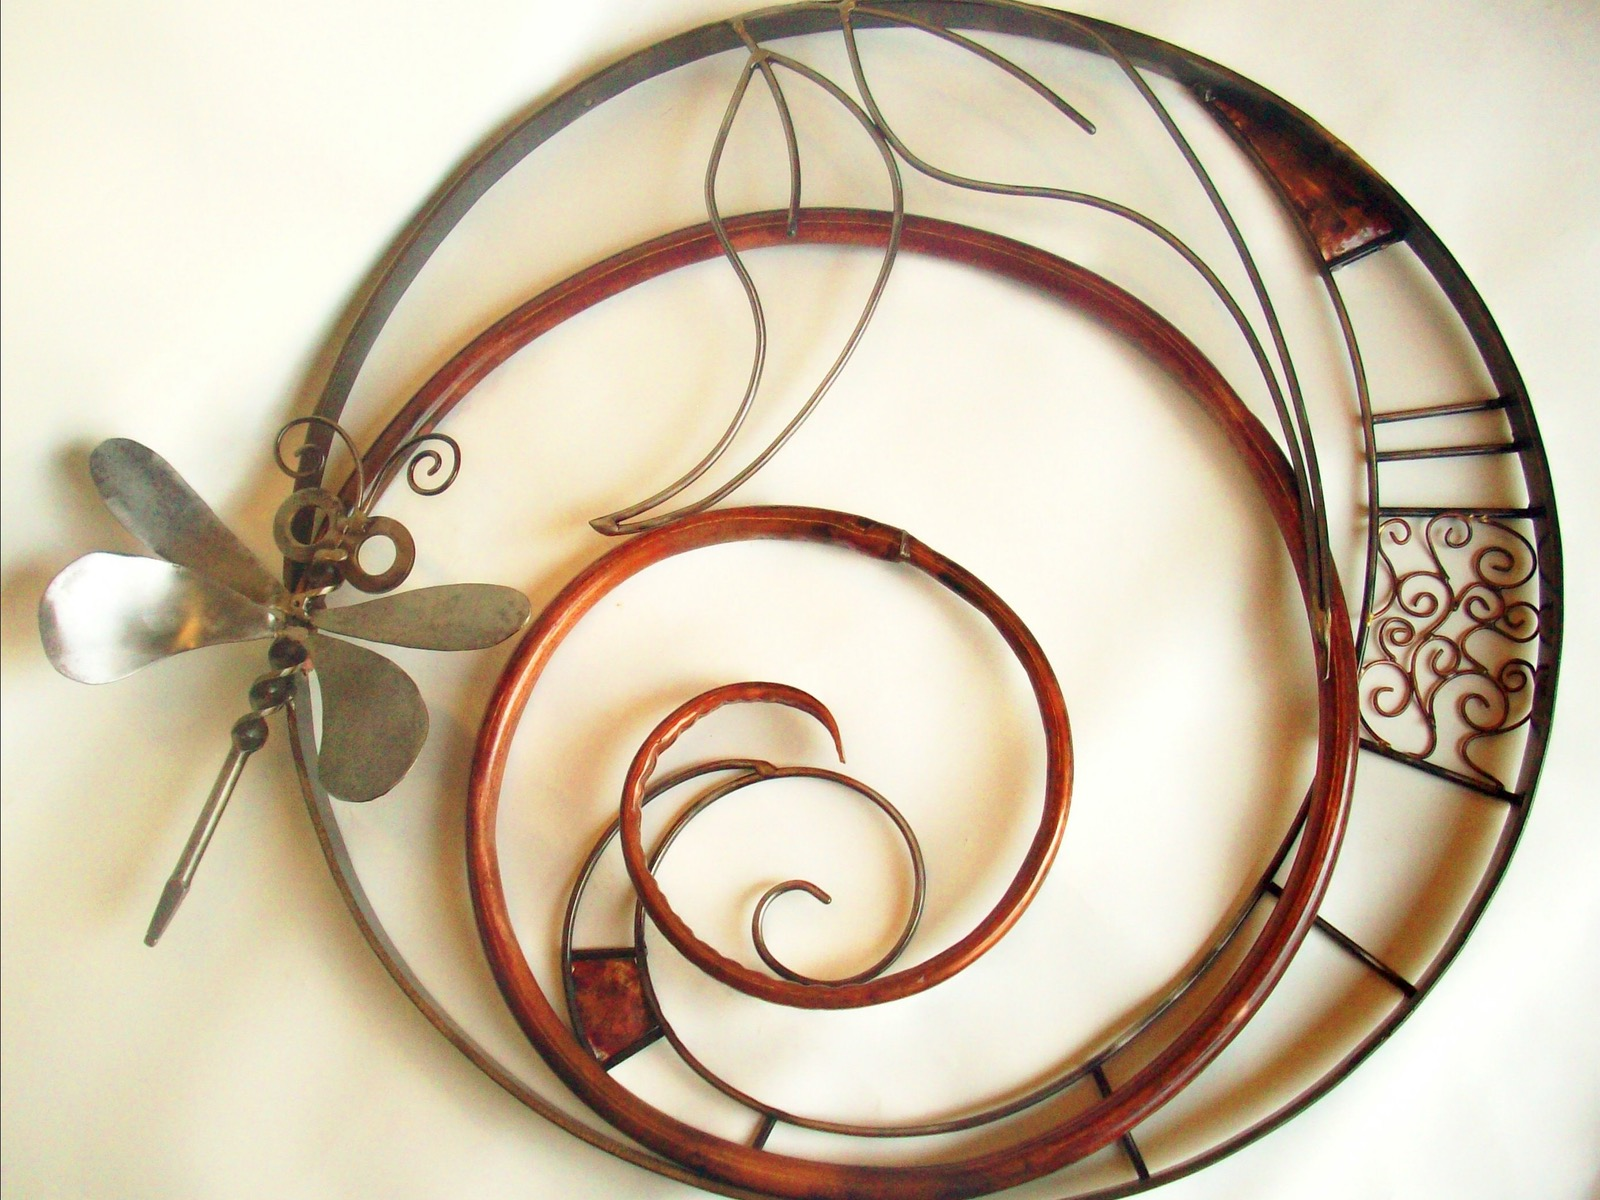 creative metalwork by Cinnamon Stephens of Studio 66